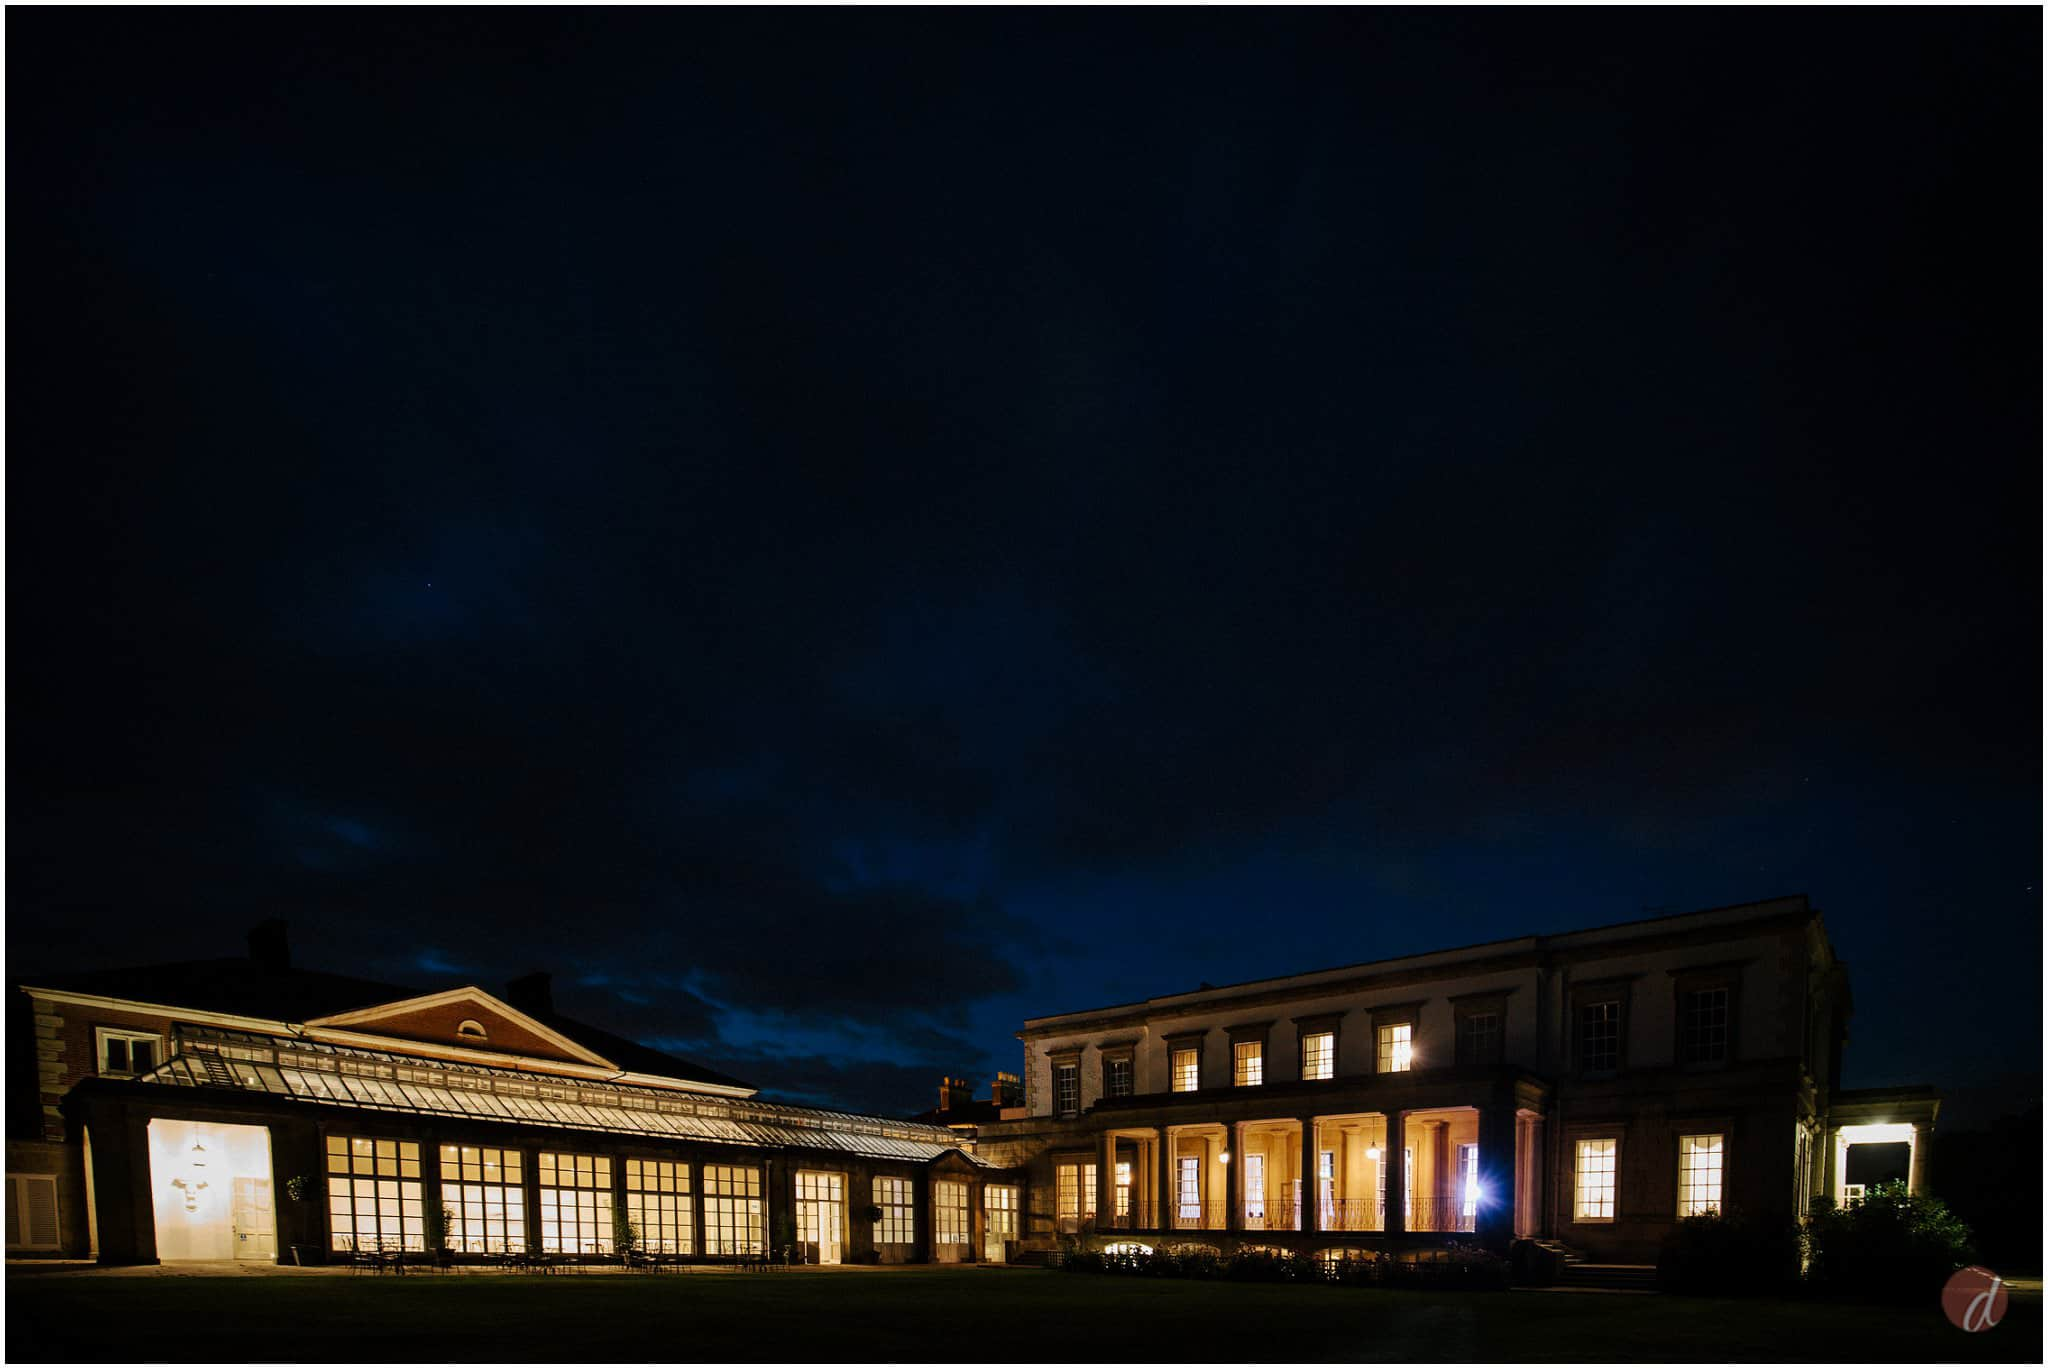 buxted park at night